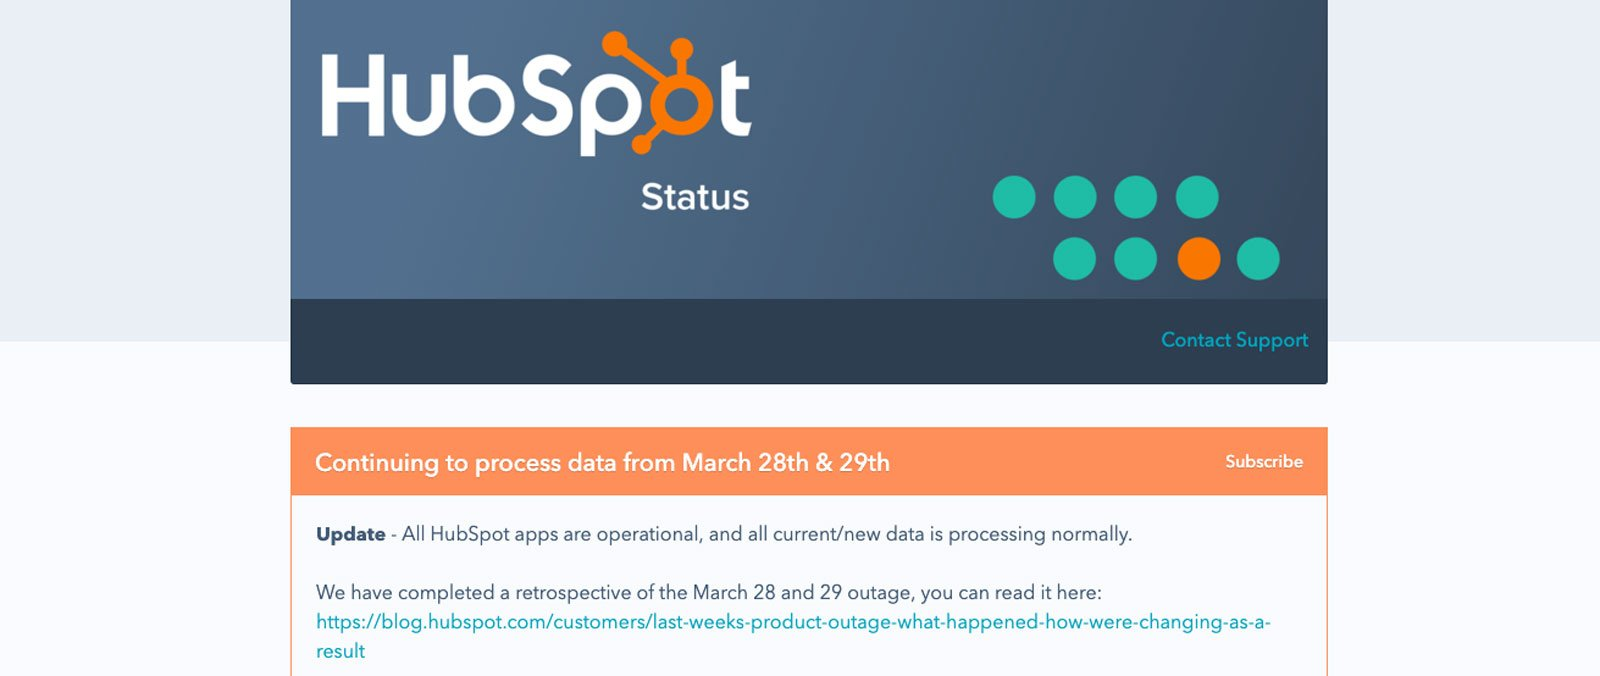 A Breakdown of HubSpot's Outage Retrospective for the Non-Technical User